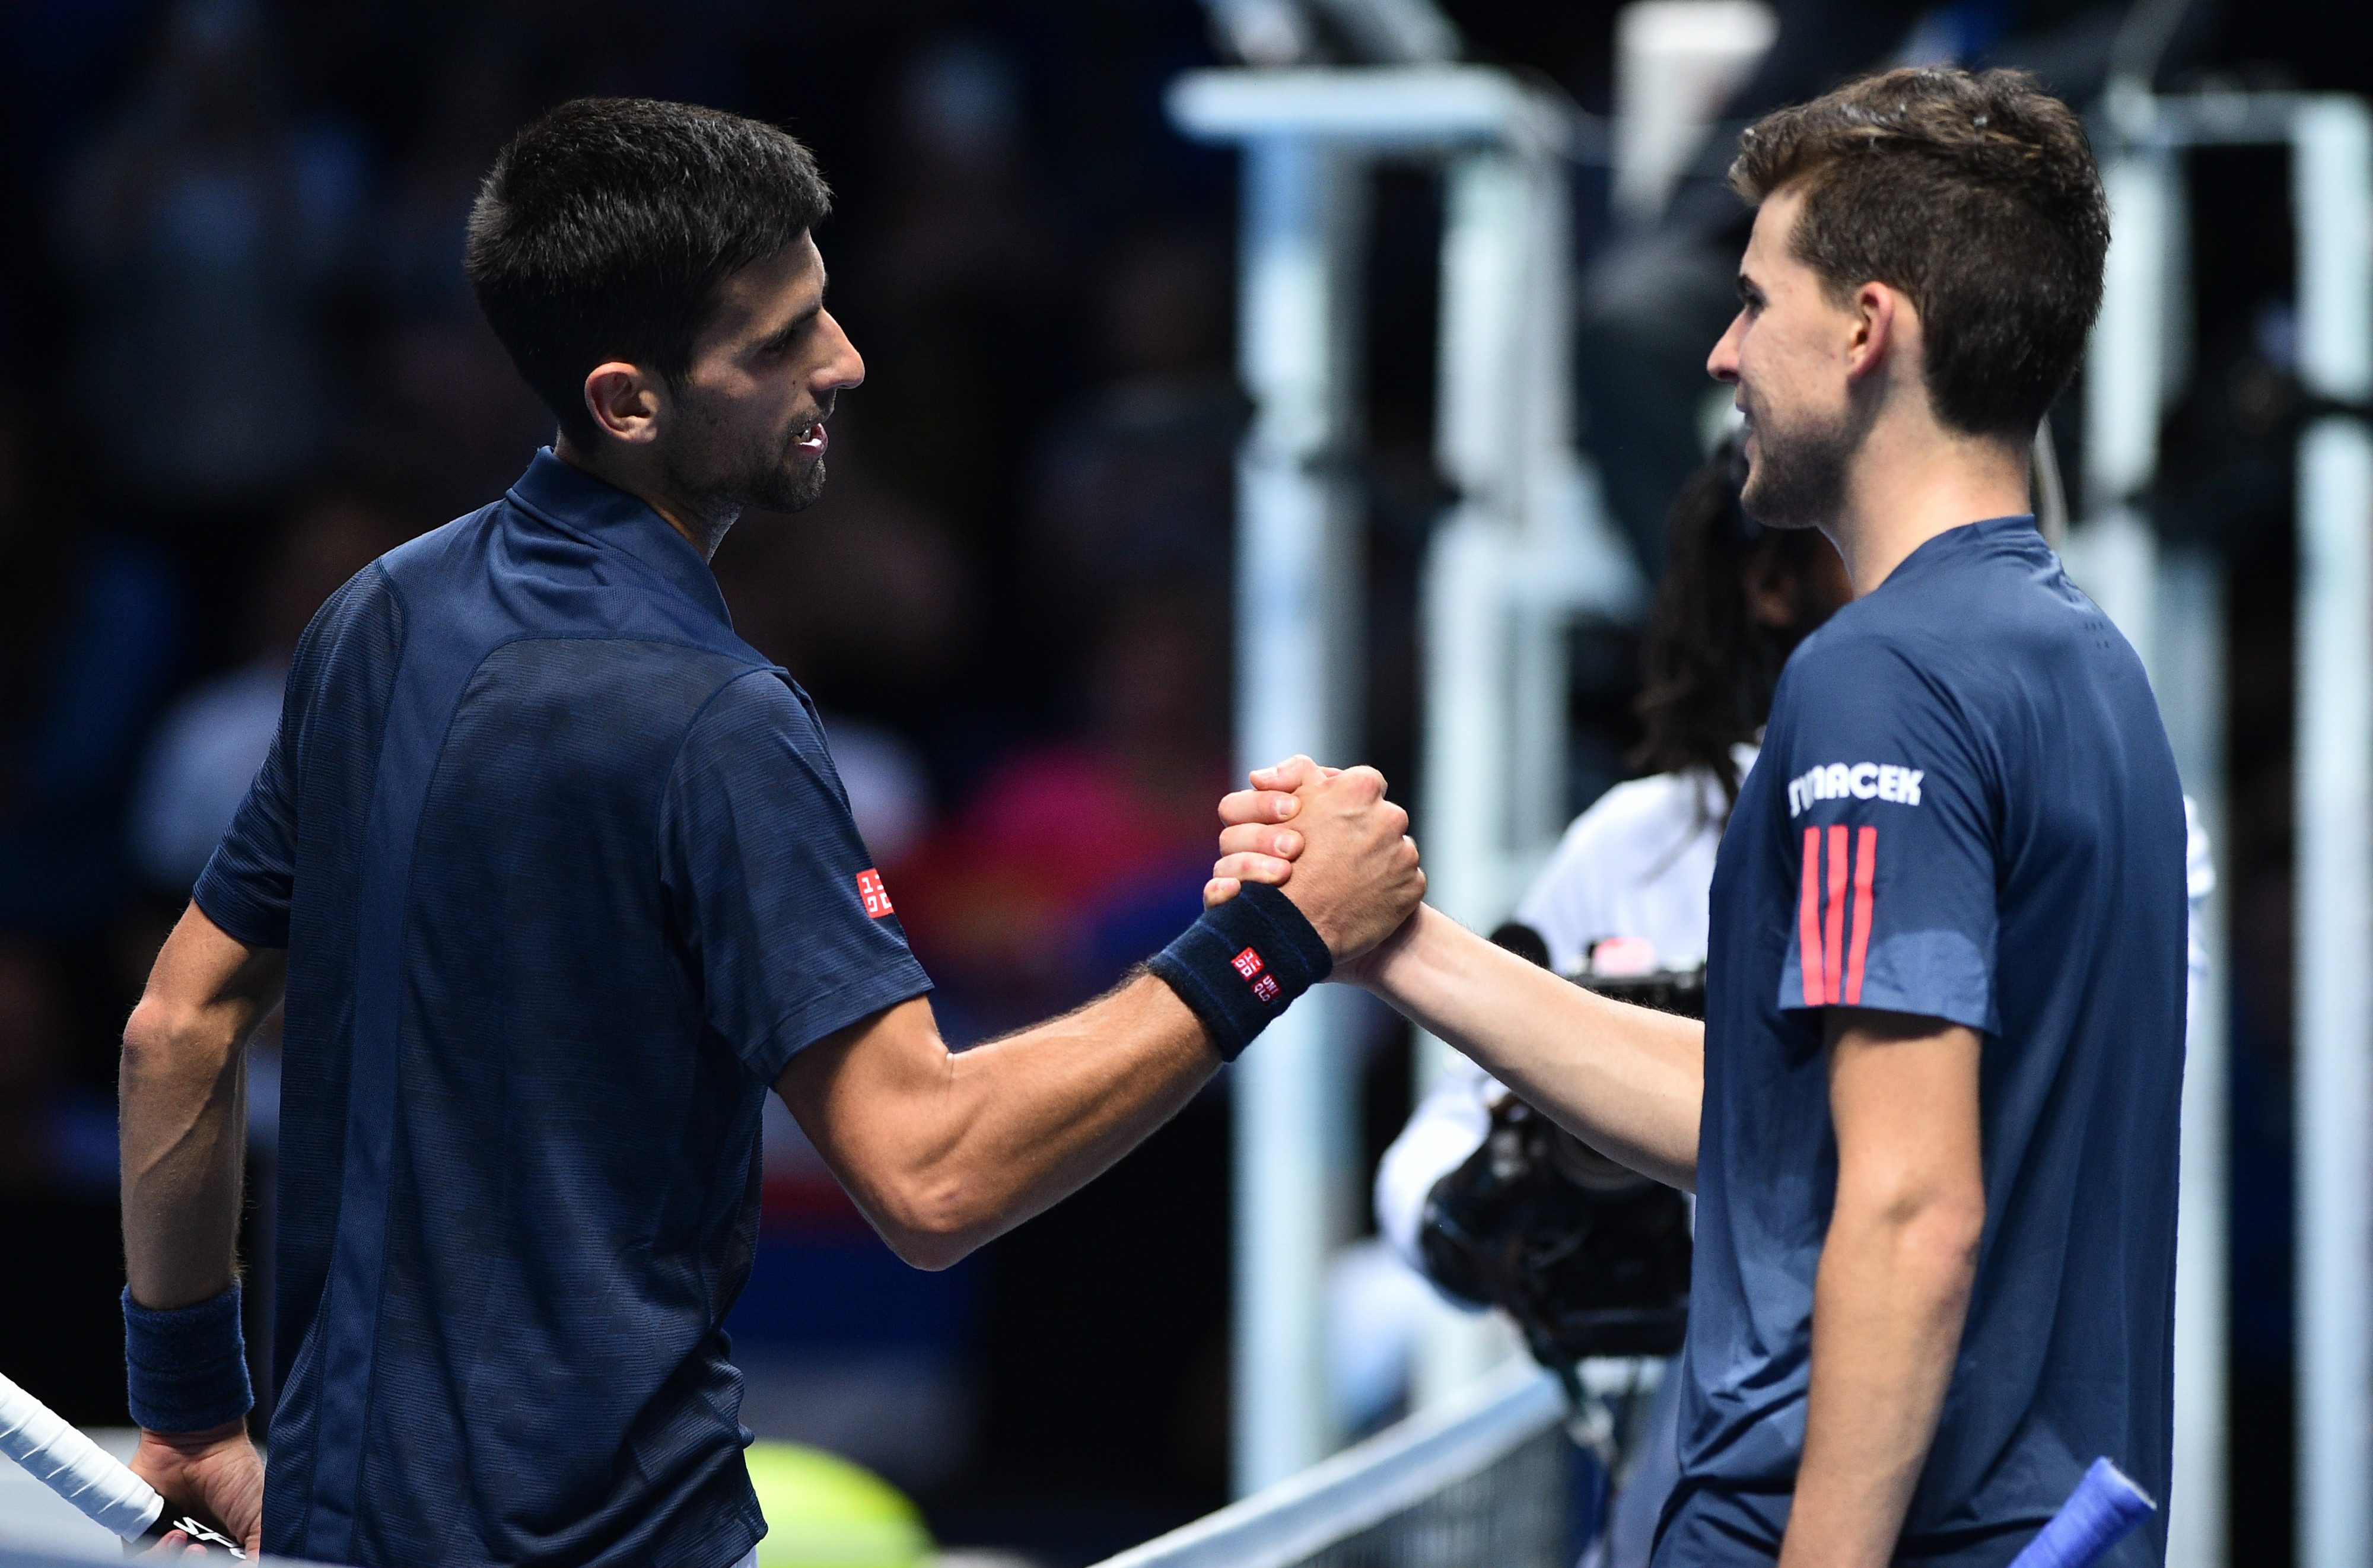 Novak Djokovic y Dominic Thiem